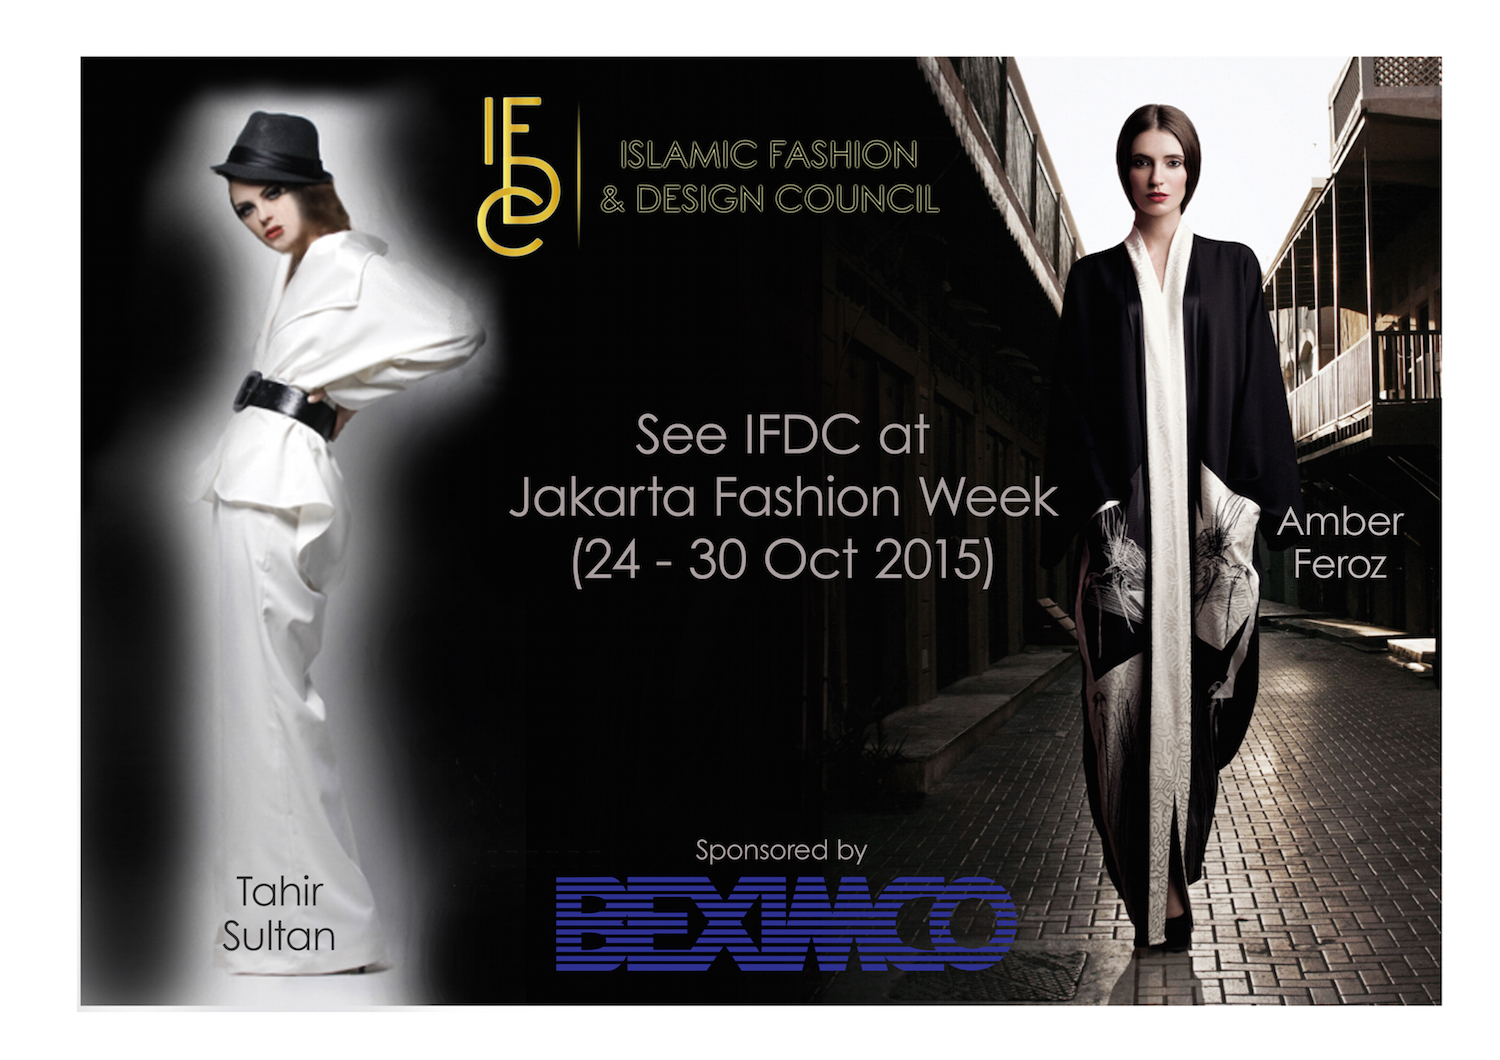 Islamic Fashion and Design Council & Jakarta Fashion Week